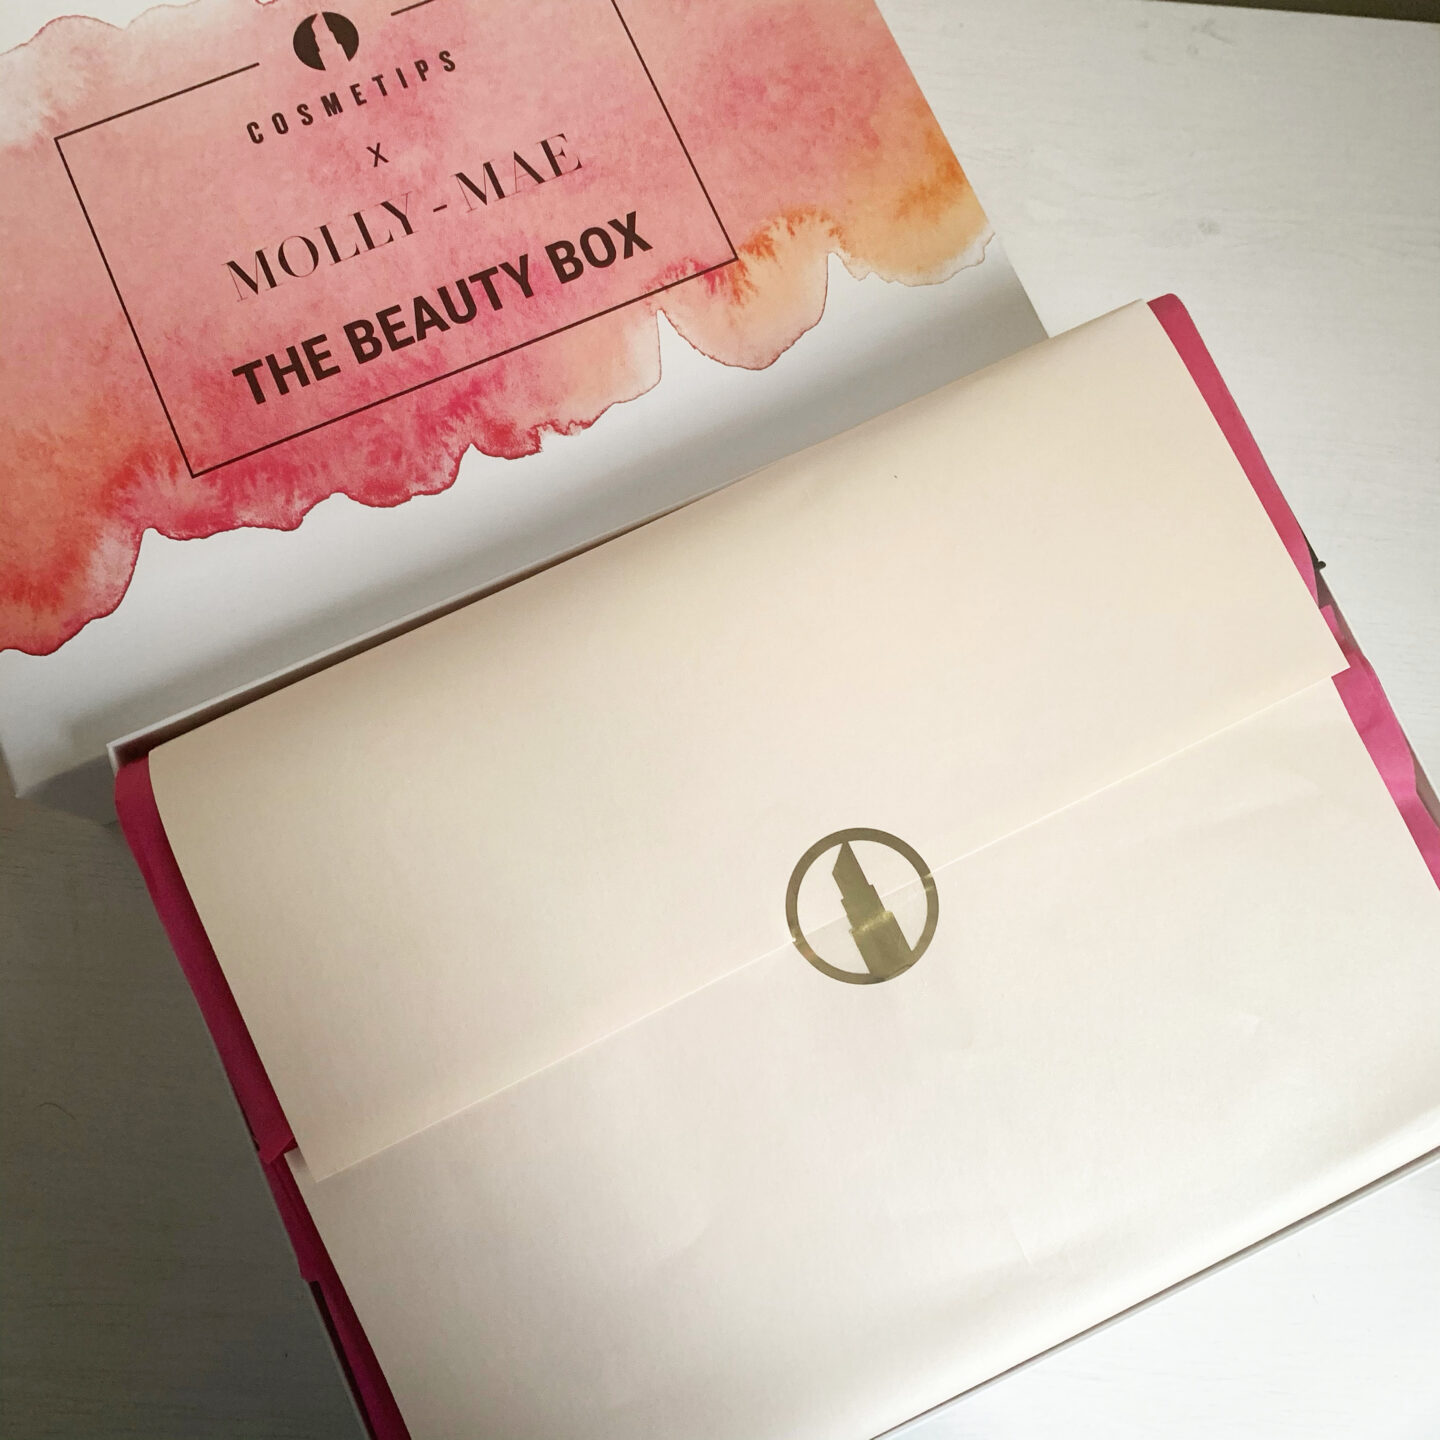 Cosmetips x Molly Mae Beauty Box Review - Miss Boux